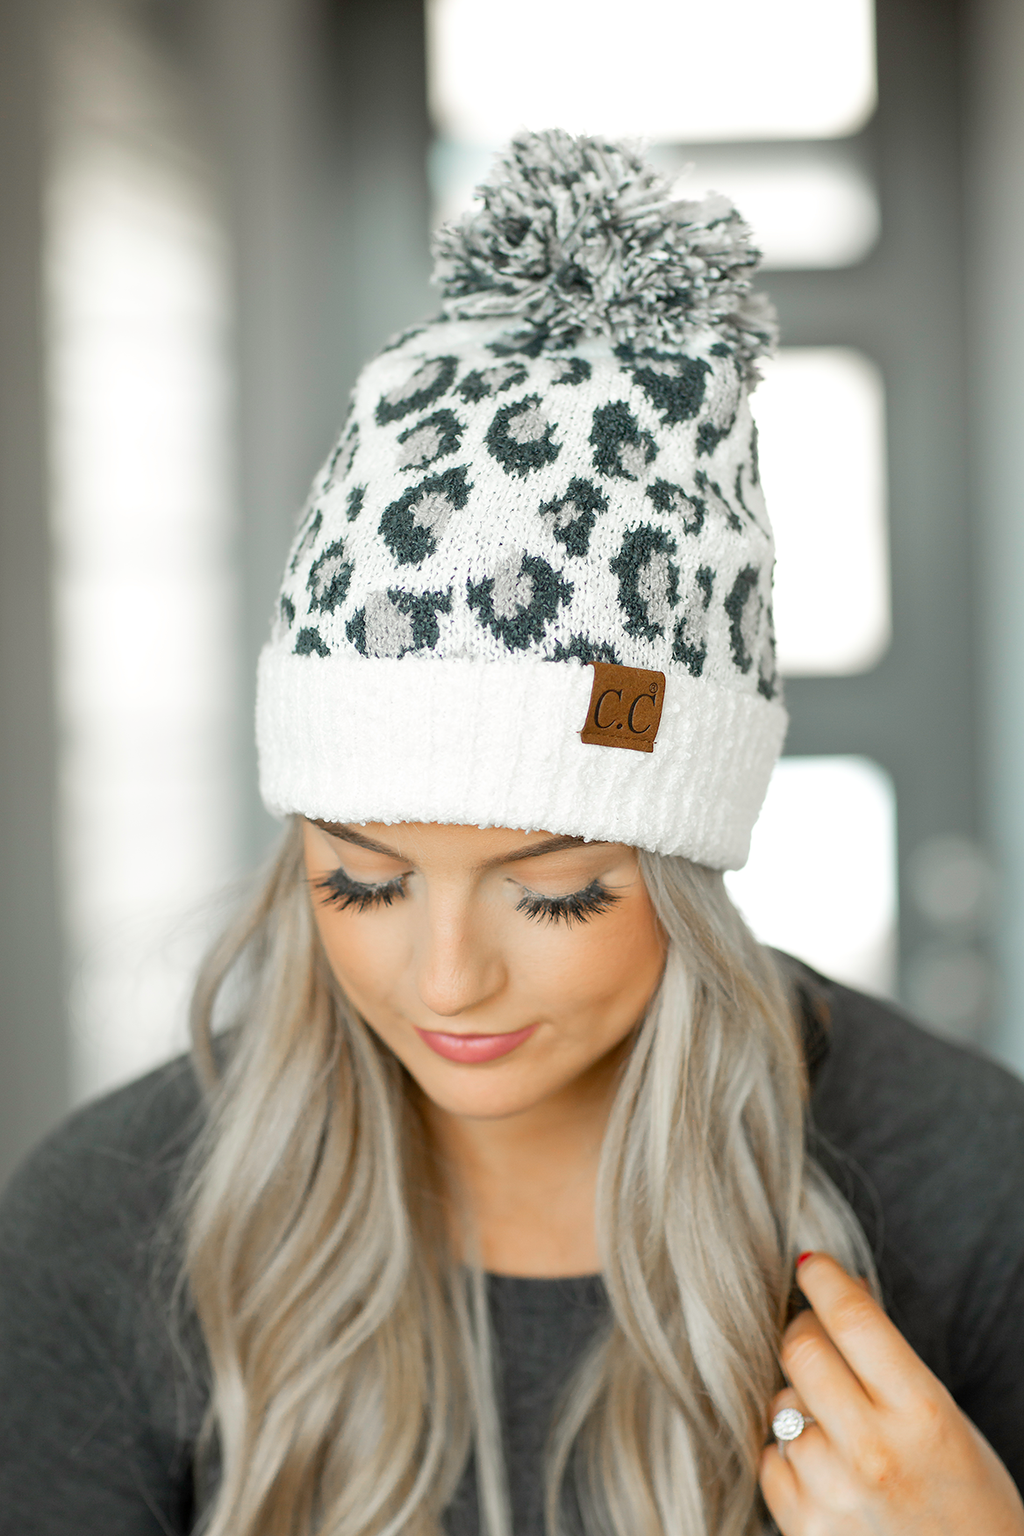 CC Knit Pom Beanie in White and Gray Animal Print